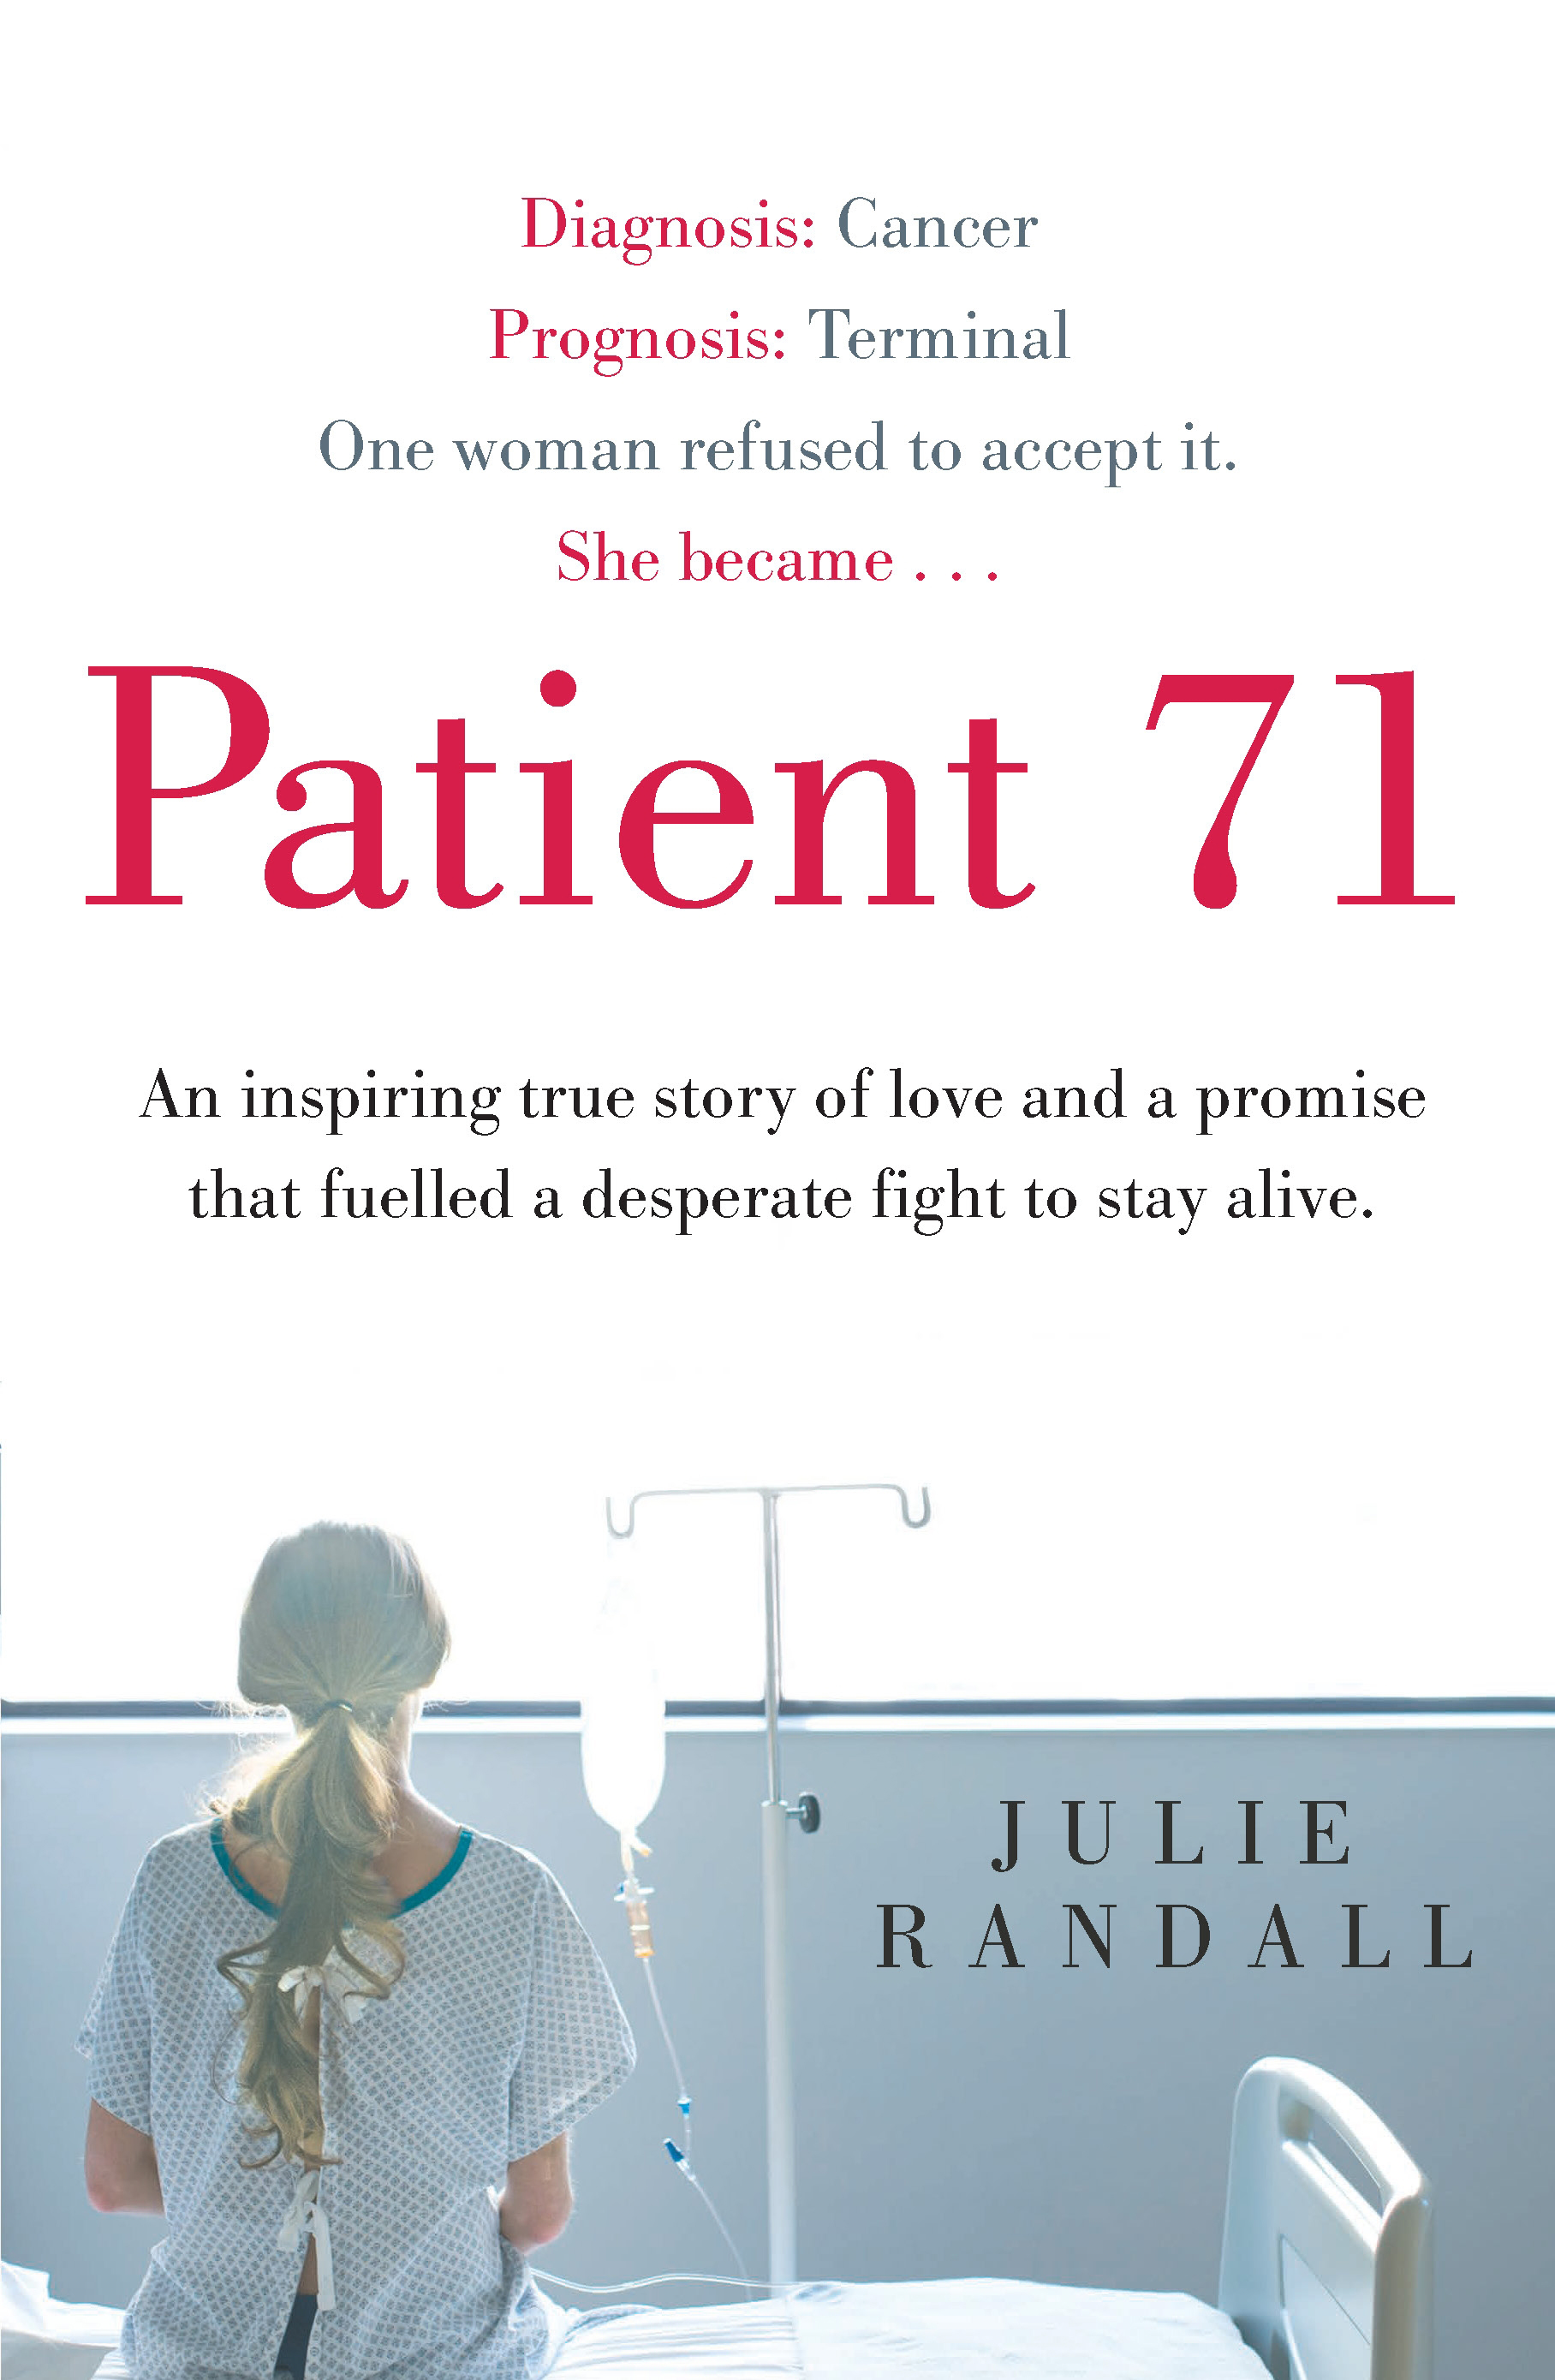 Patient 71 by Julie Randall